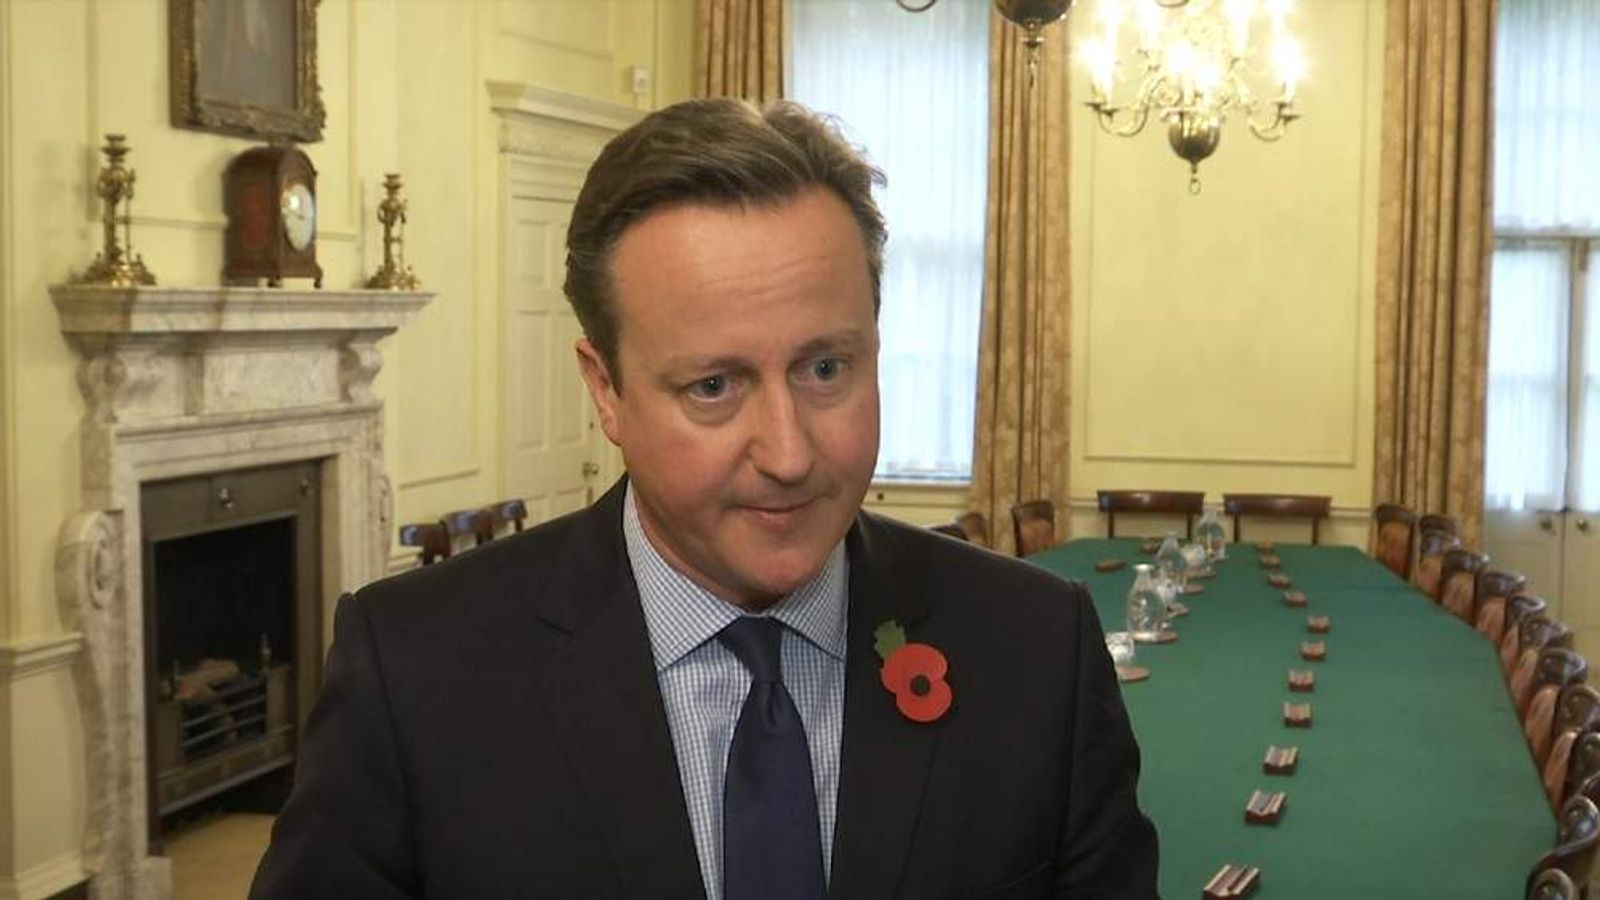 Cameron Suspended Flights To Protect British Citizens